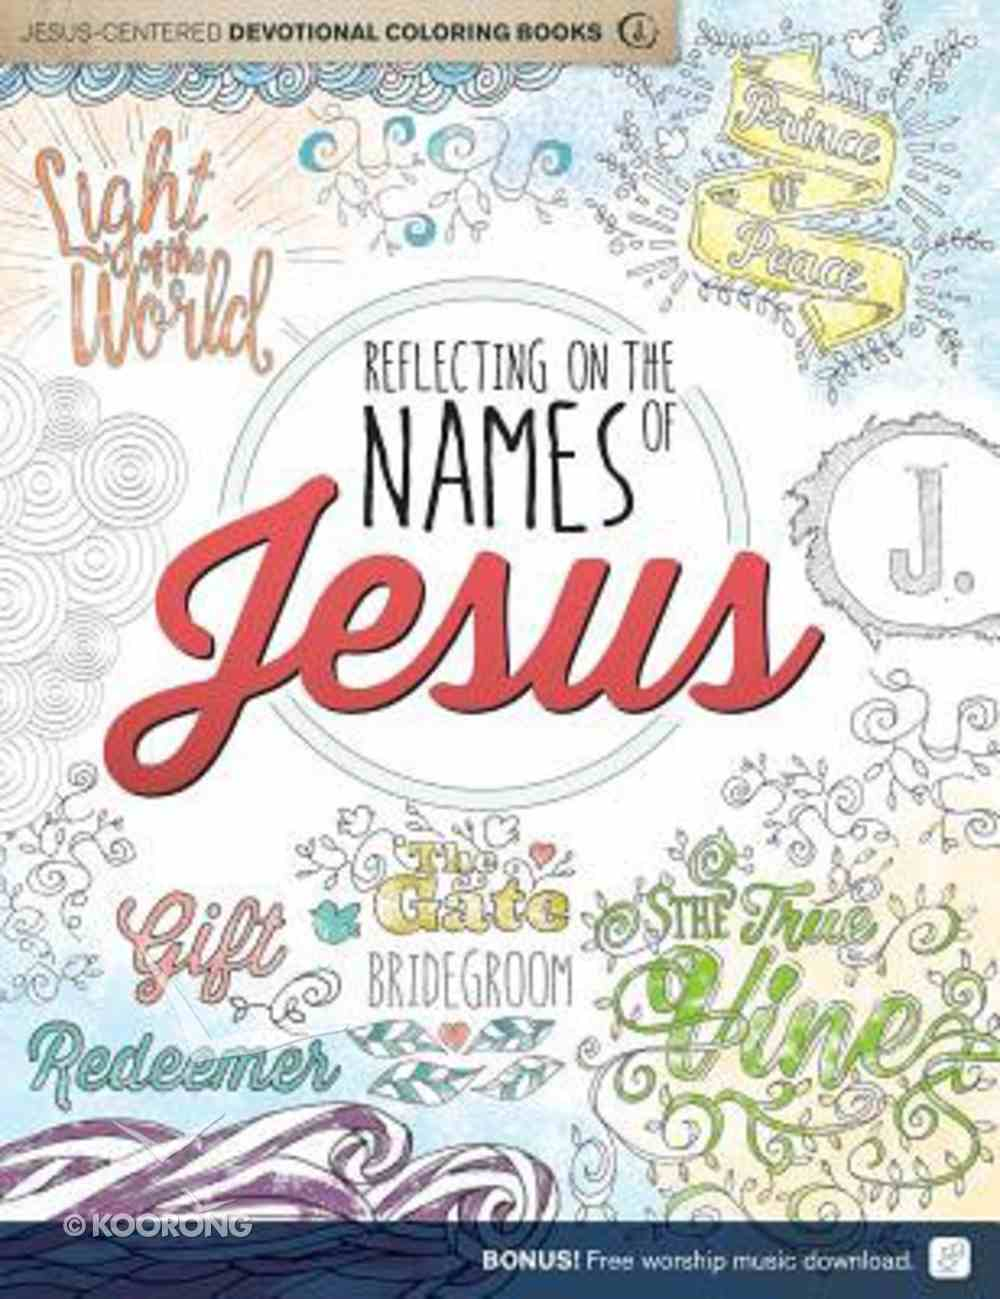 Reflecting on the Names of Jesus: Jesus-Centered Coloring Book For Adults (Adult Coloring Books Series) Paperback